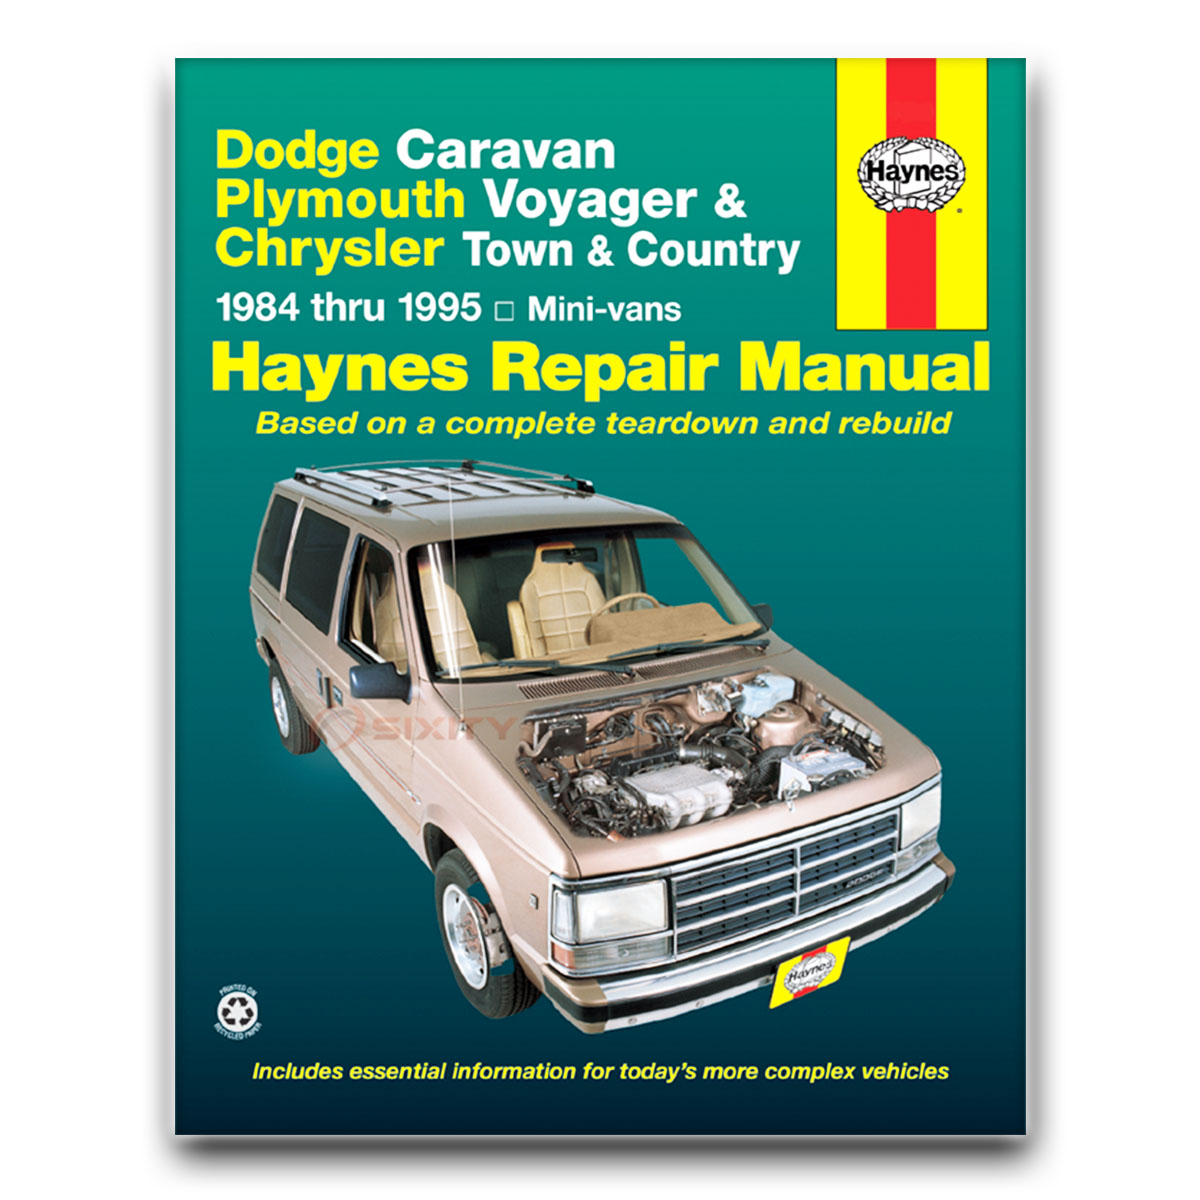 Dodge Grand Caravan Haynes Repair Manual Base ES SE LE Shop Service Garage  rf